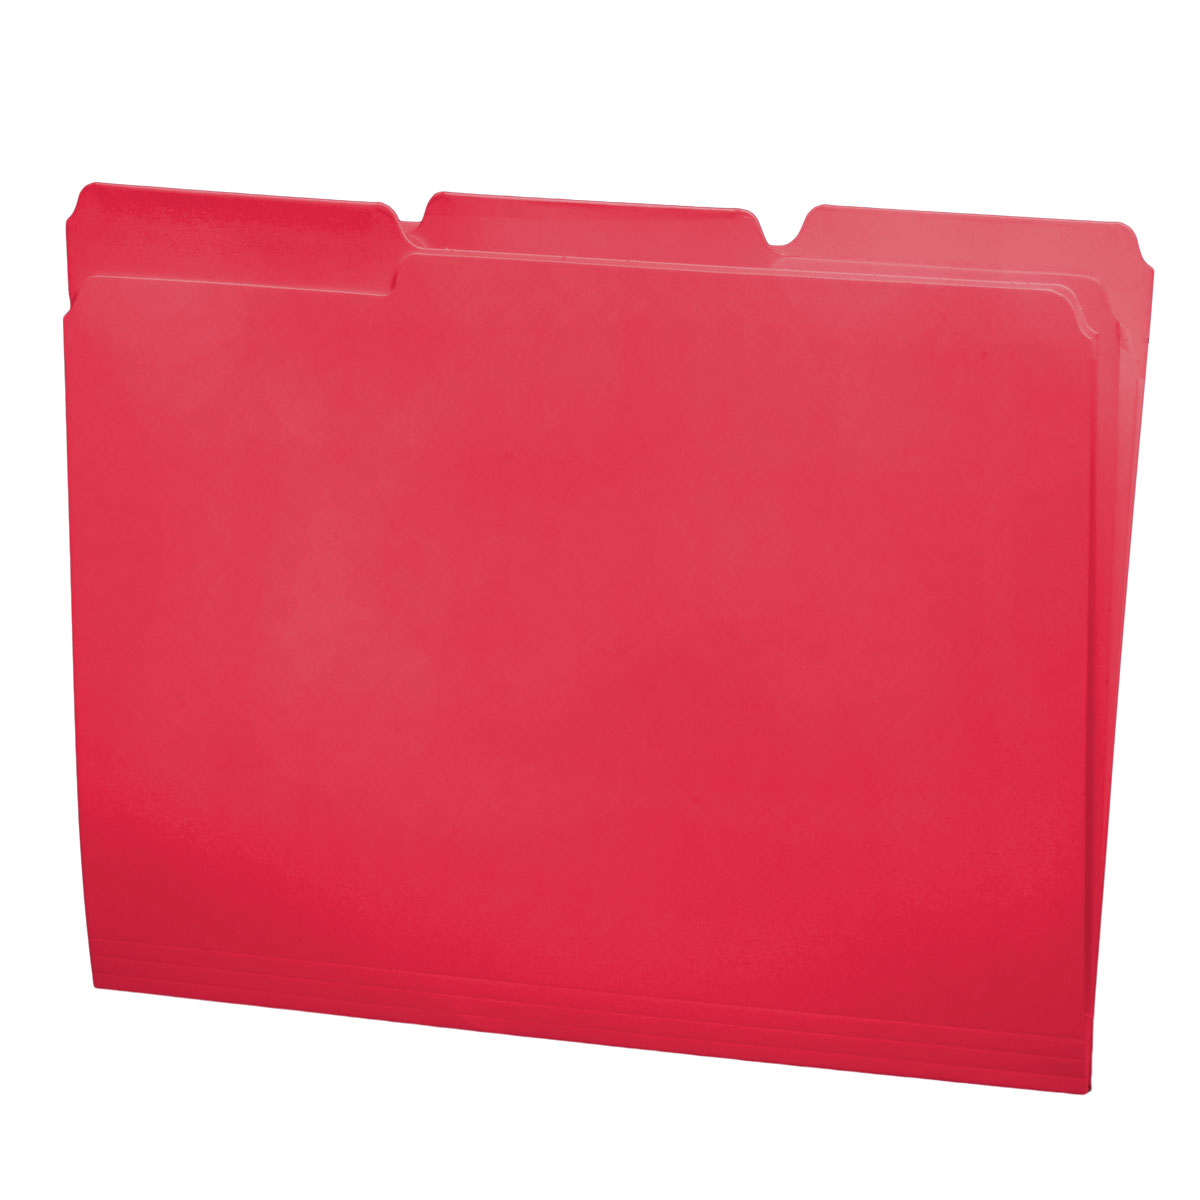 S-30503-RED - 11 pt Red Folders, 1/3 Cut Top Tab - Assorted, Letter Size (Box of 100)